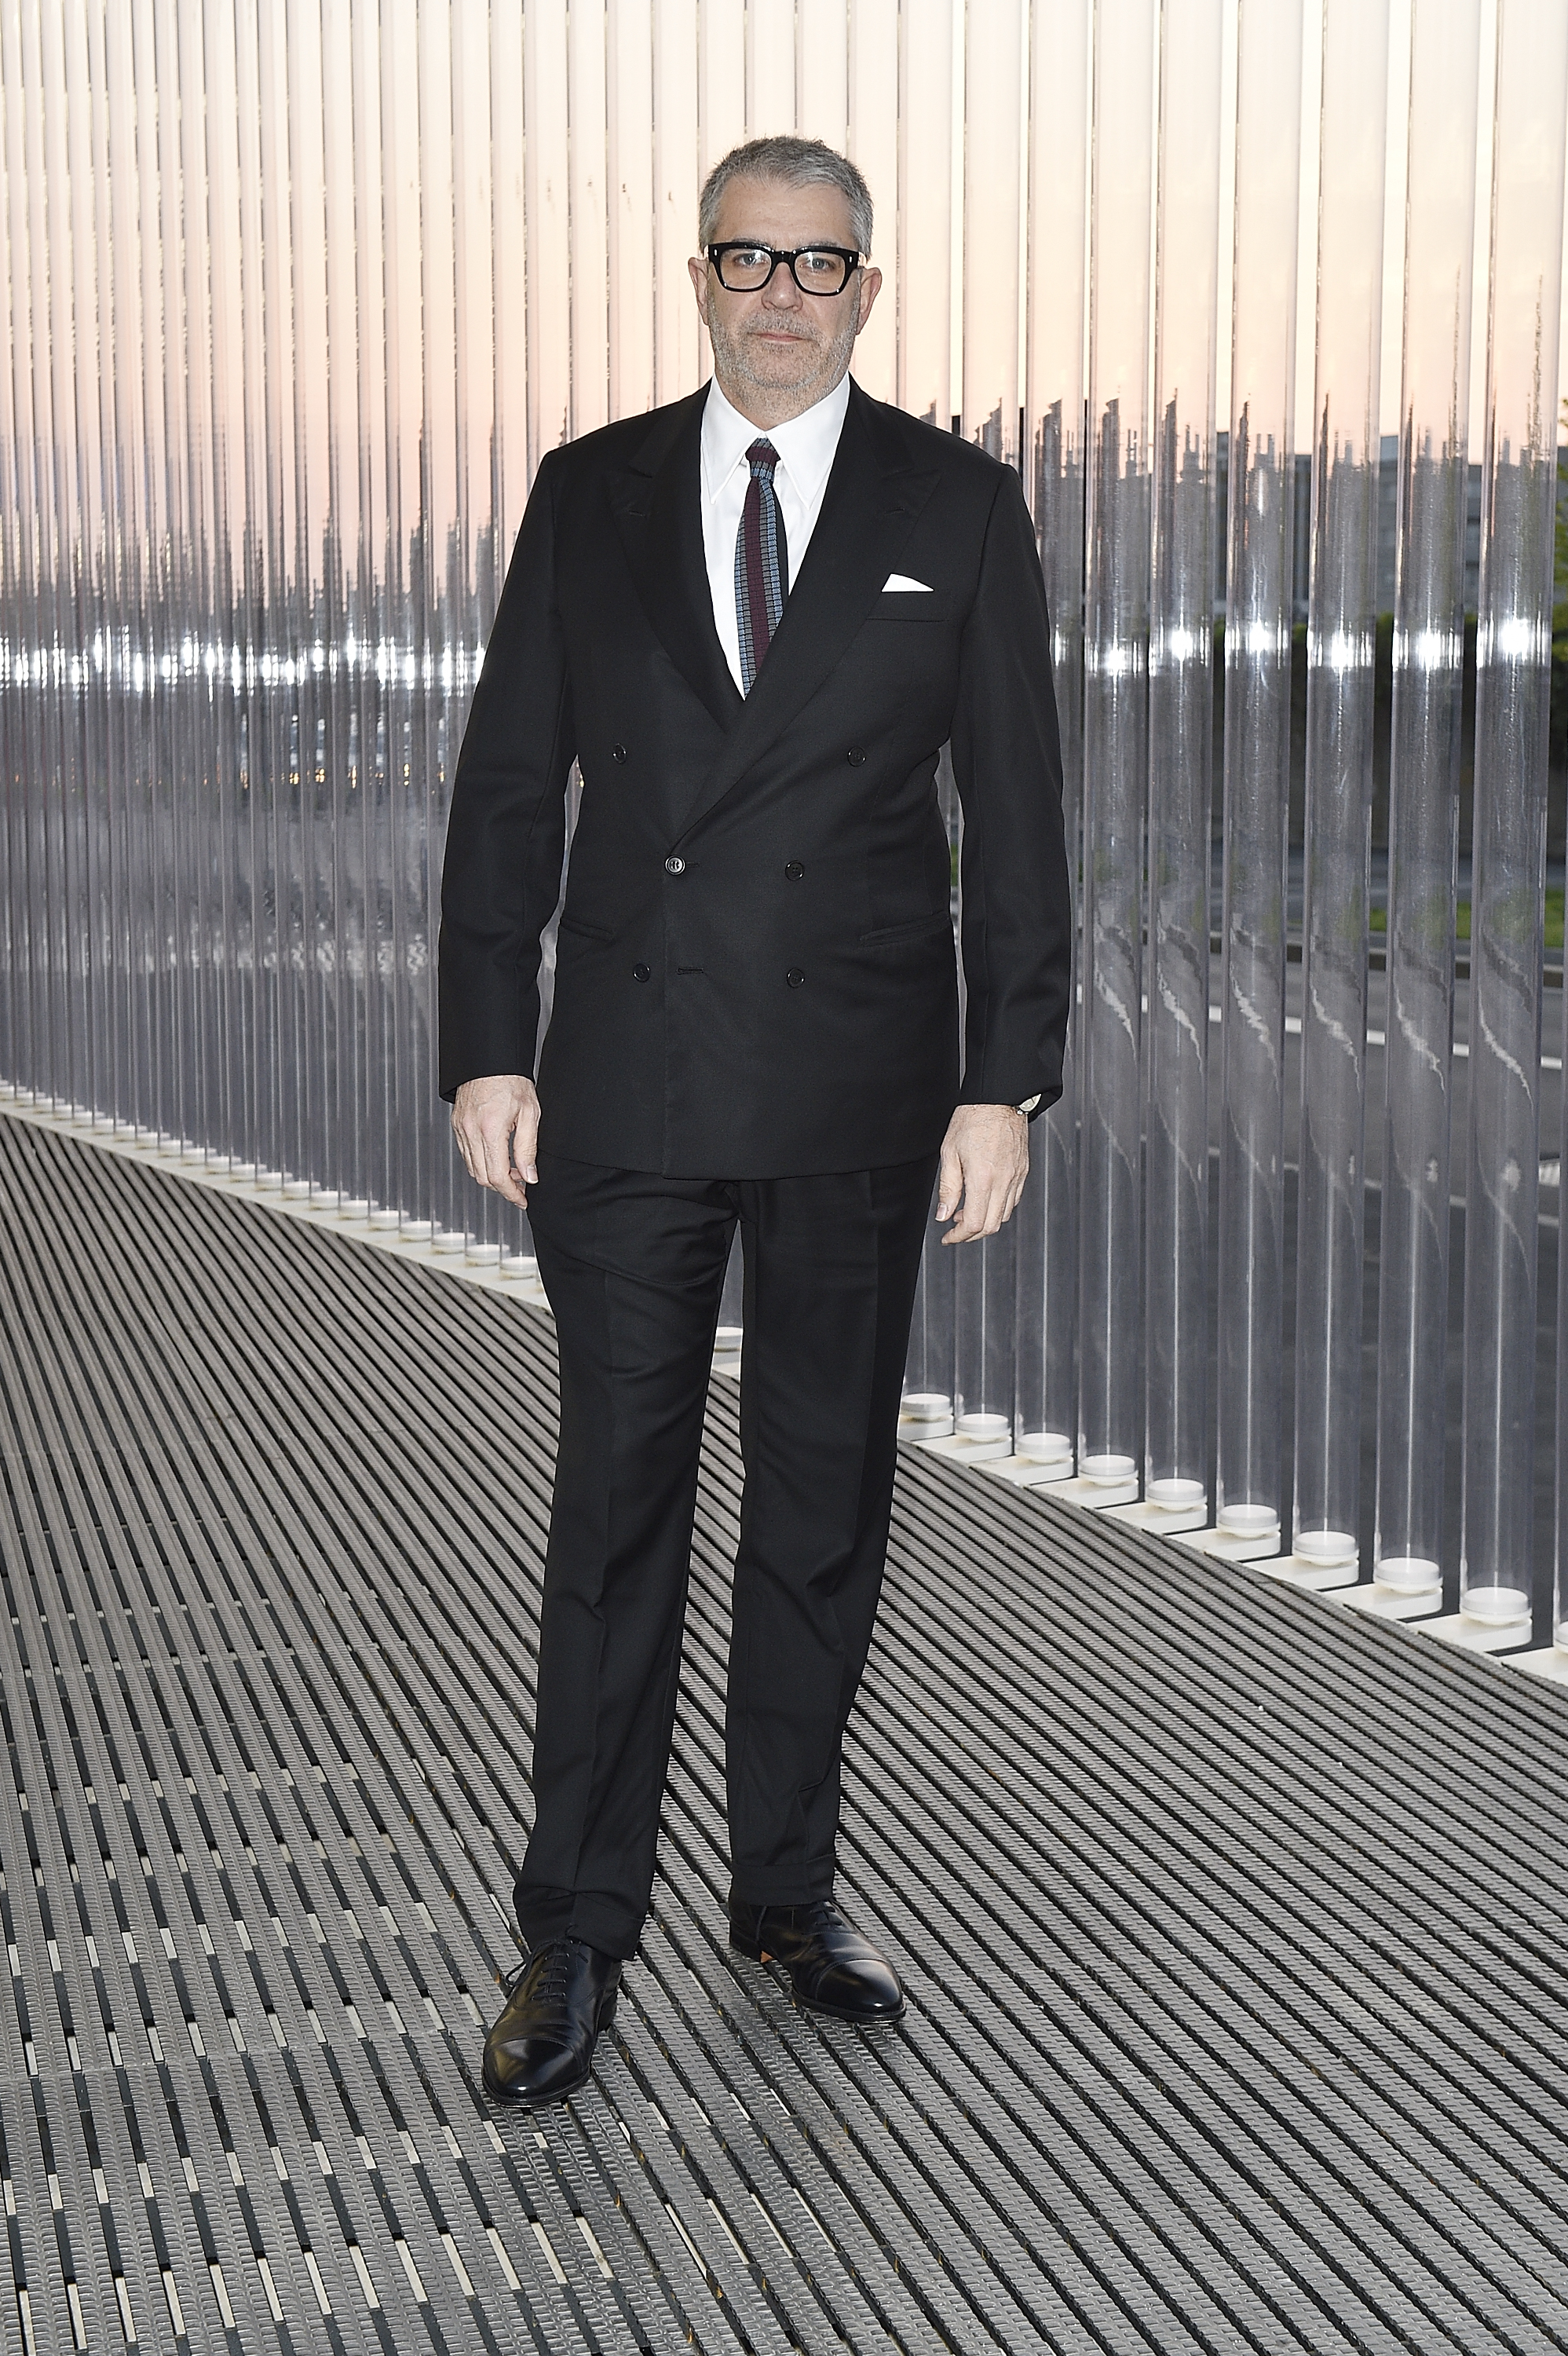 Gio Marconi à l'inauguration de la Torre à la Fondazione Prada le 18 avril 2018 à Milan, Italie. (Photo by Pietro D'Aprano/Getty Images for Fondazione Prada)